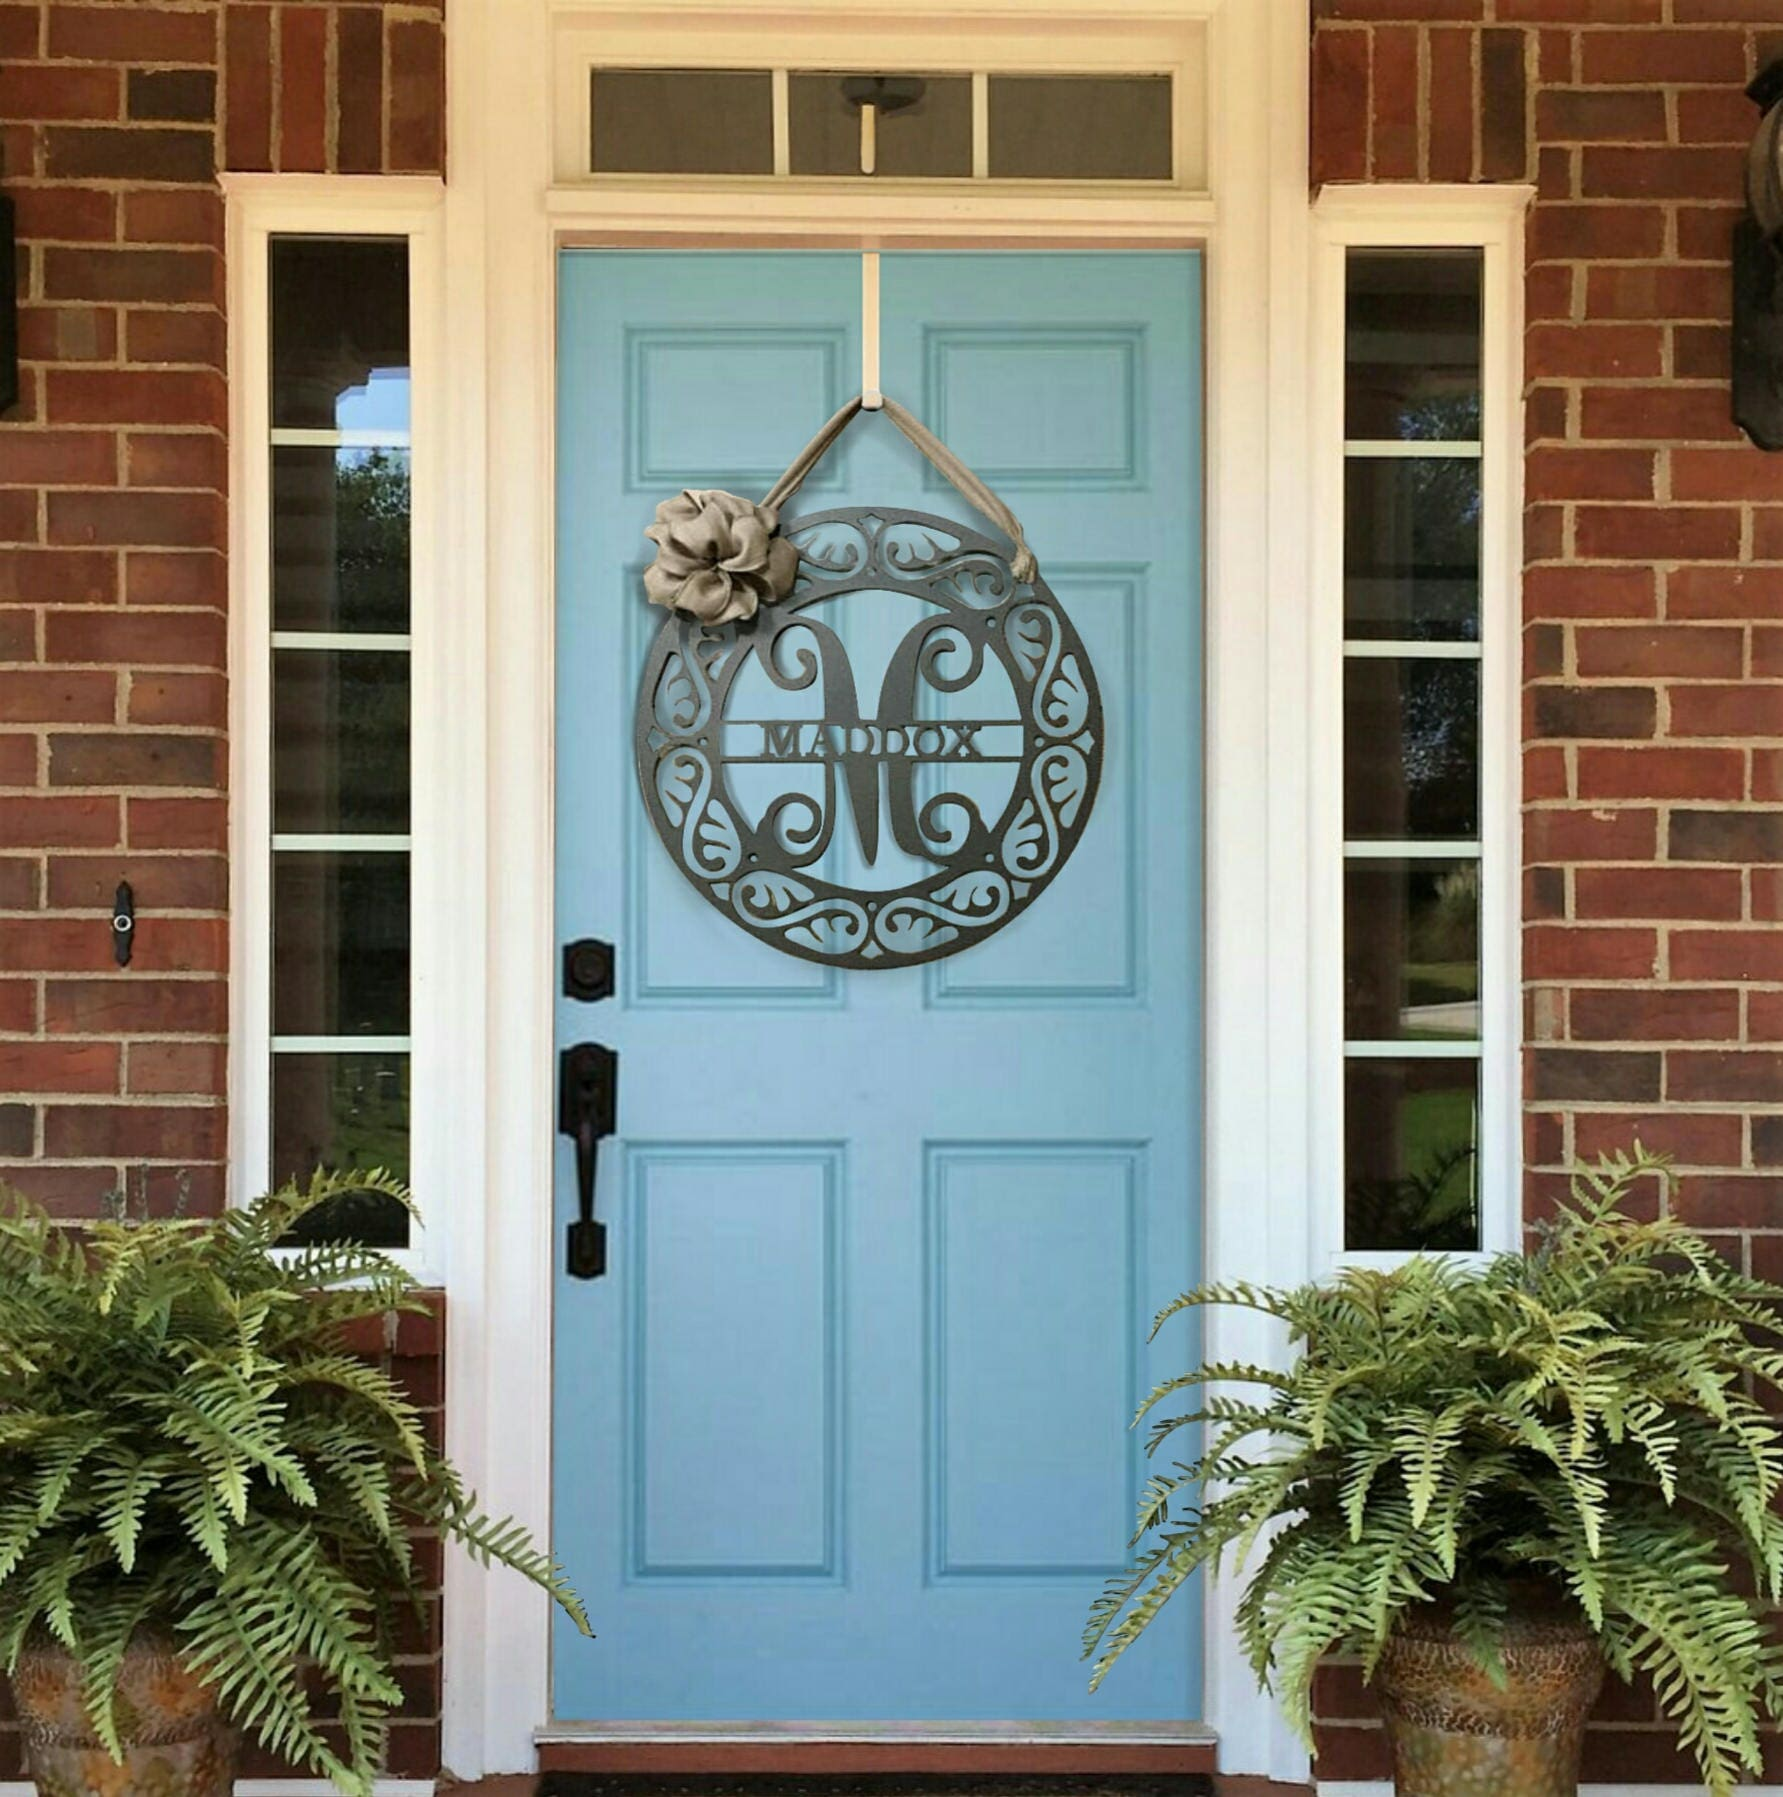 Monogram Front Door Decoration: Fancy Schmancy: Monogram Front Door Wreath With Ribbon